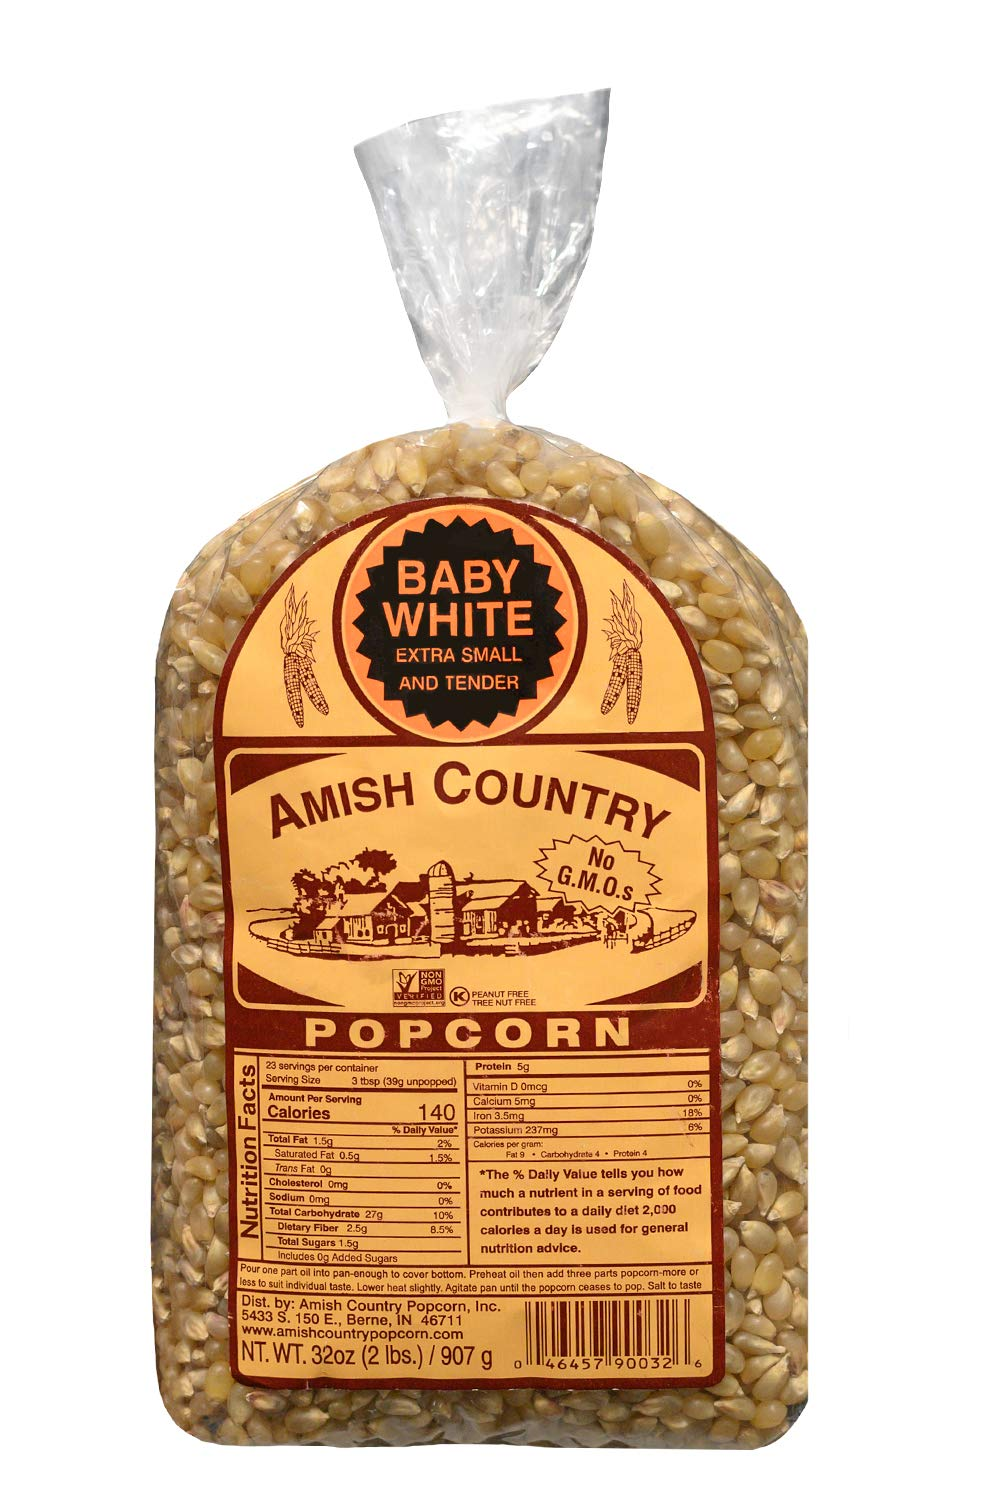 Amish Country Popcorn - Baby White Kernels (2 Pound Bag) - Small & Tender Popcorn - Old Fashioned And Delicious with Recipe Guide by Amish Country Popcorn